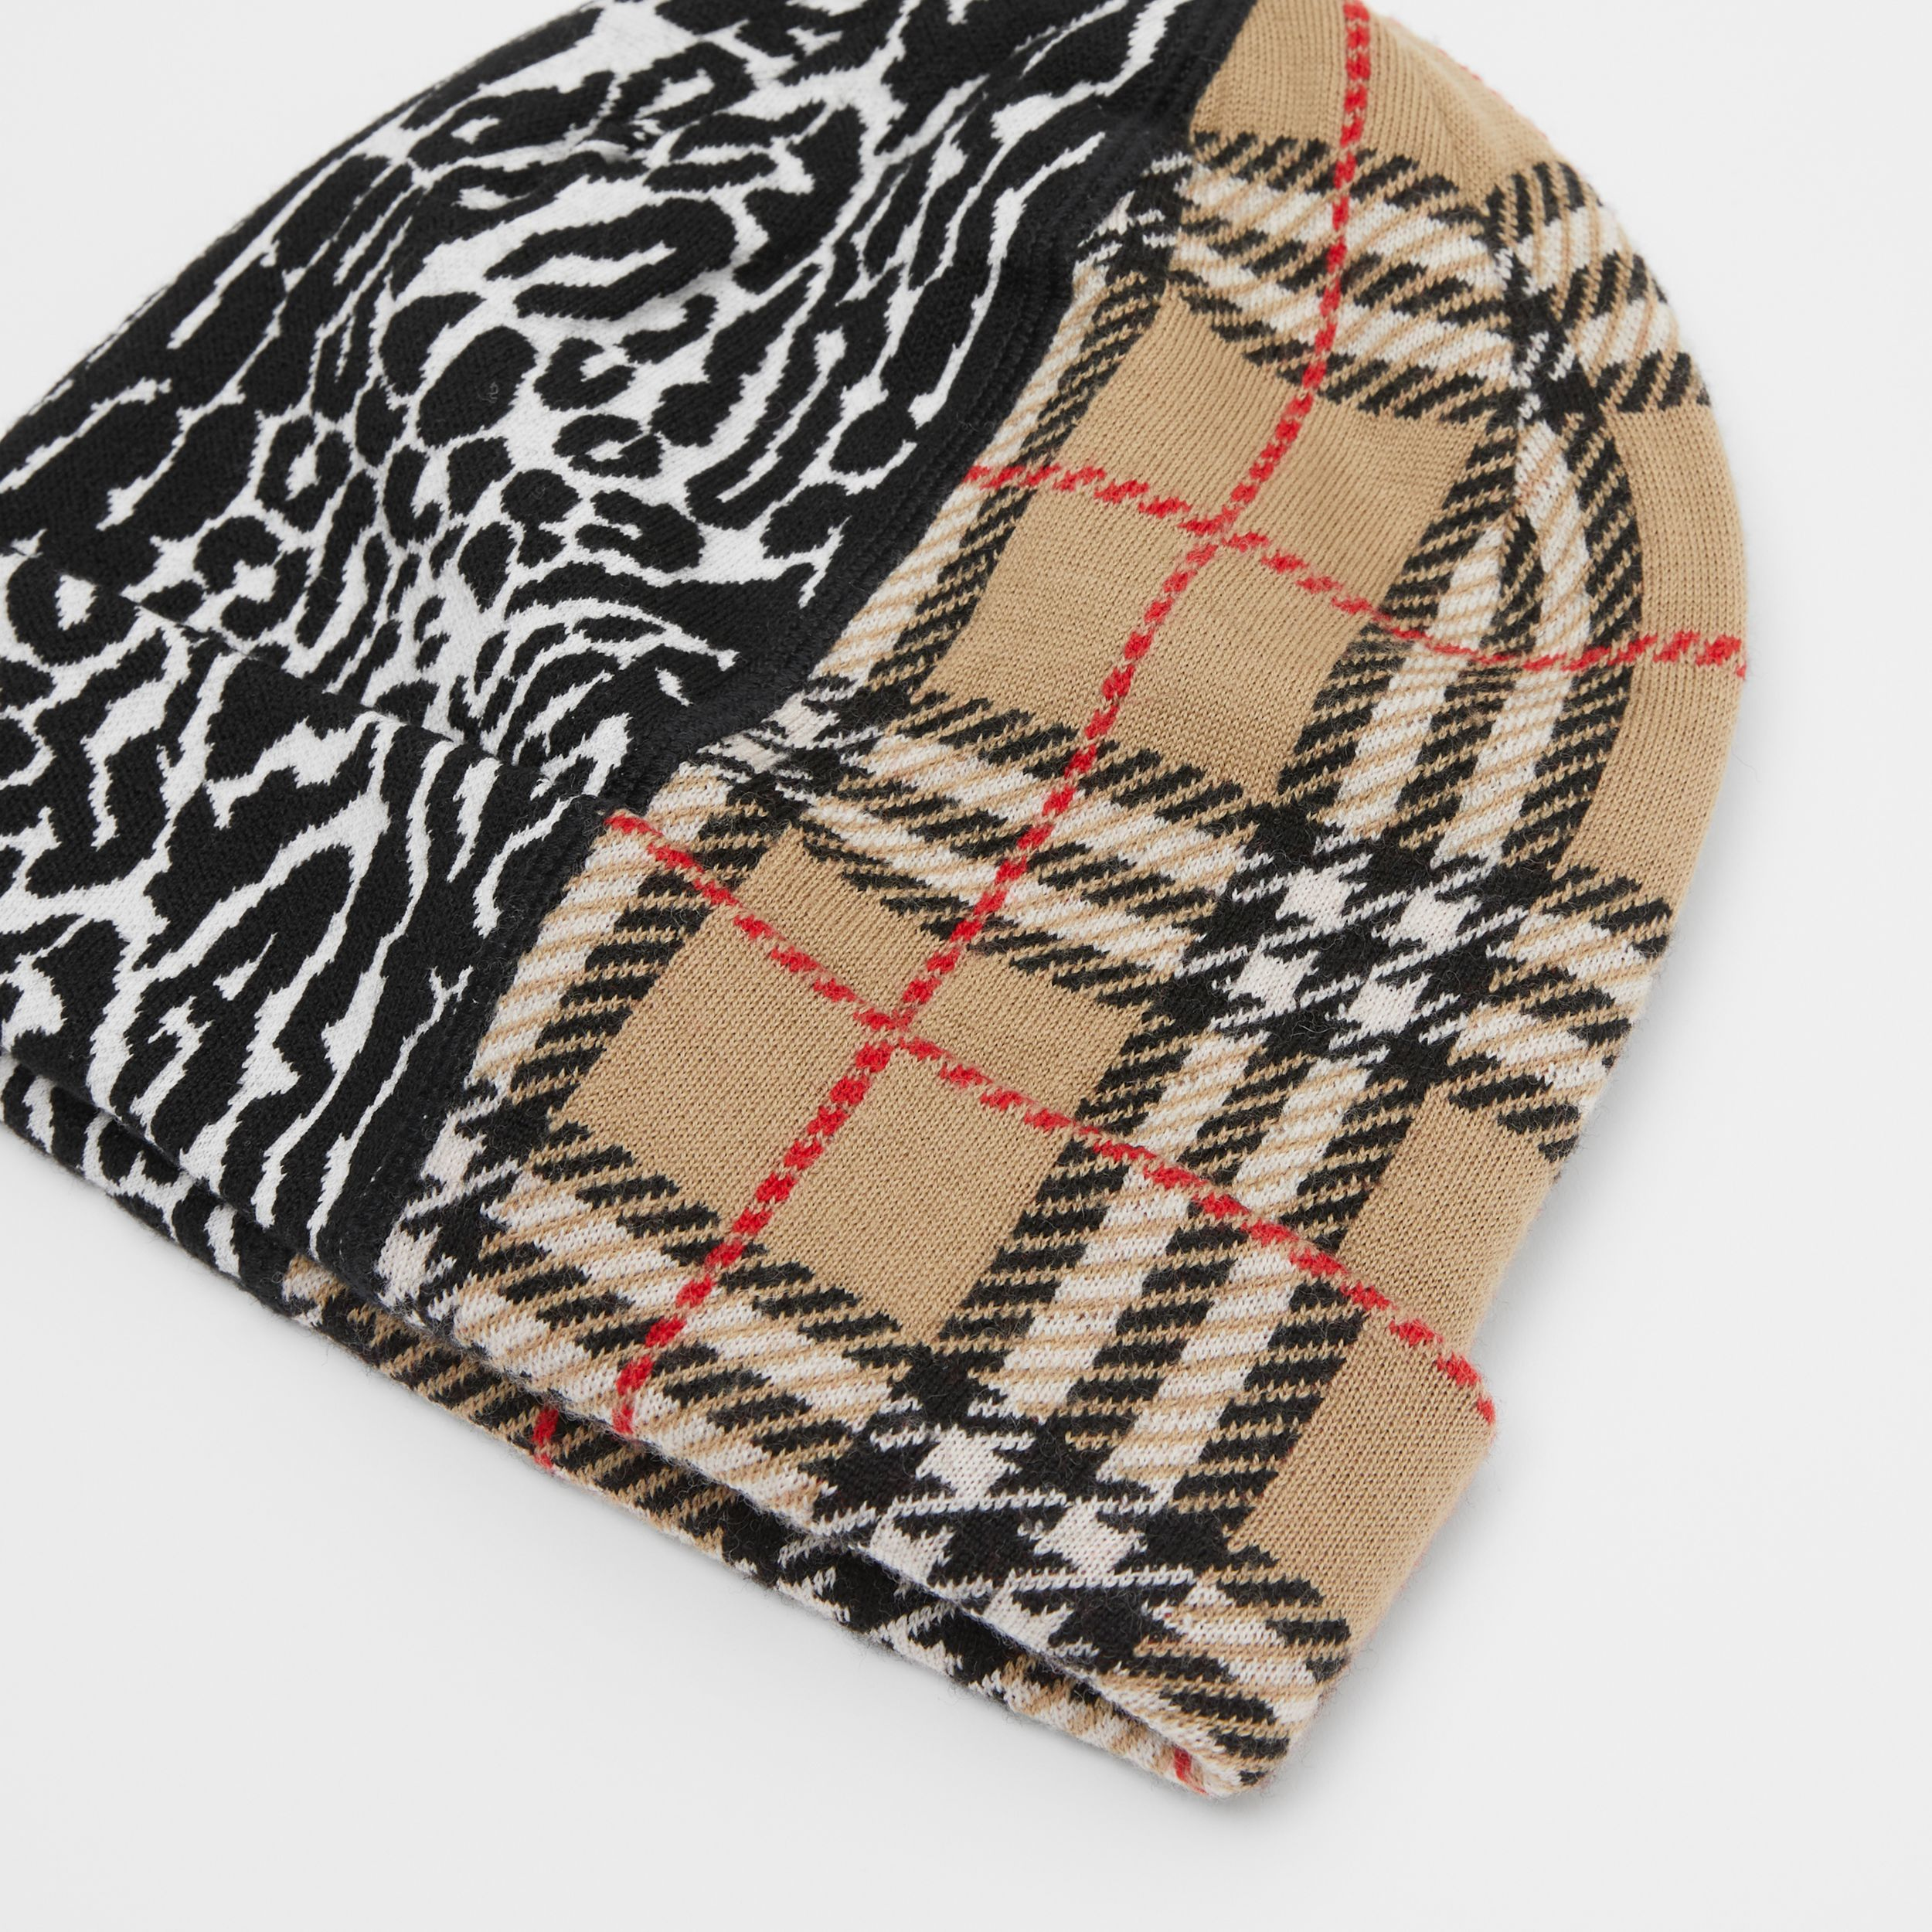 Check and Leopard Merino Wool Jacquard Beanie in Print - Children | Burberry - 2